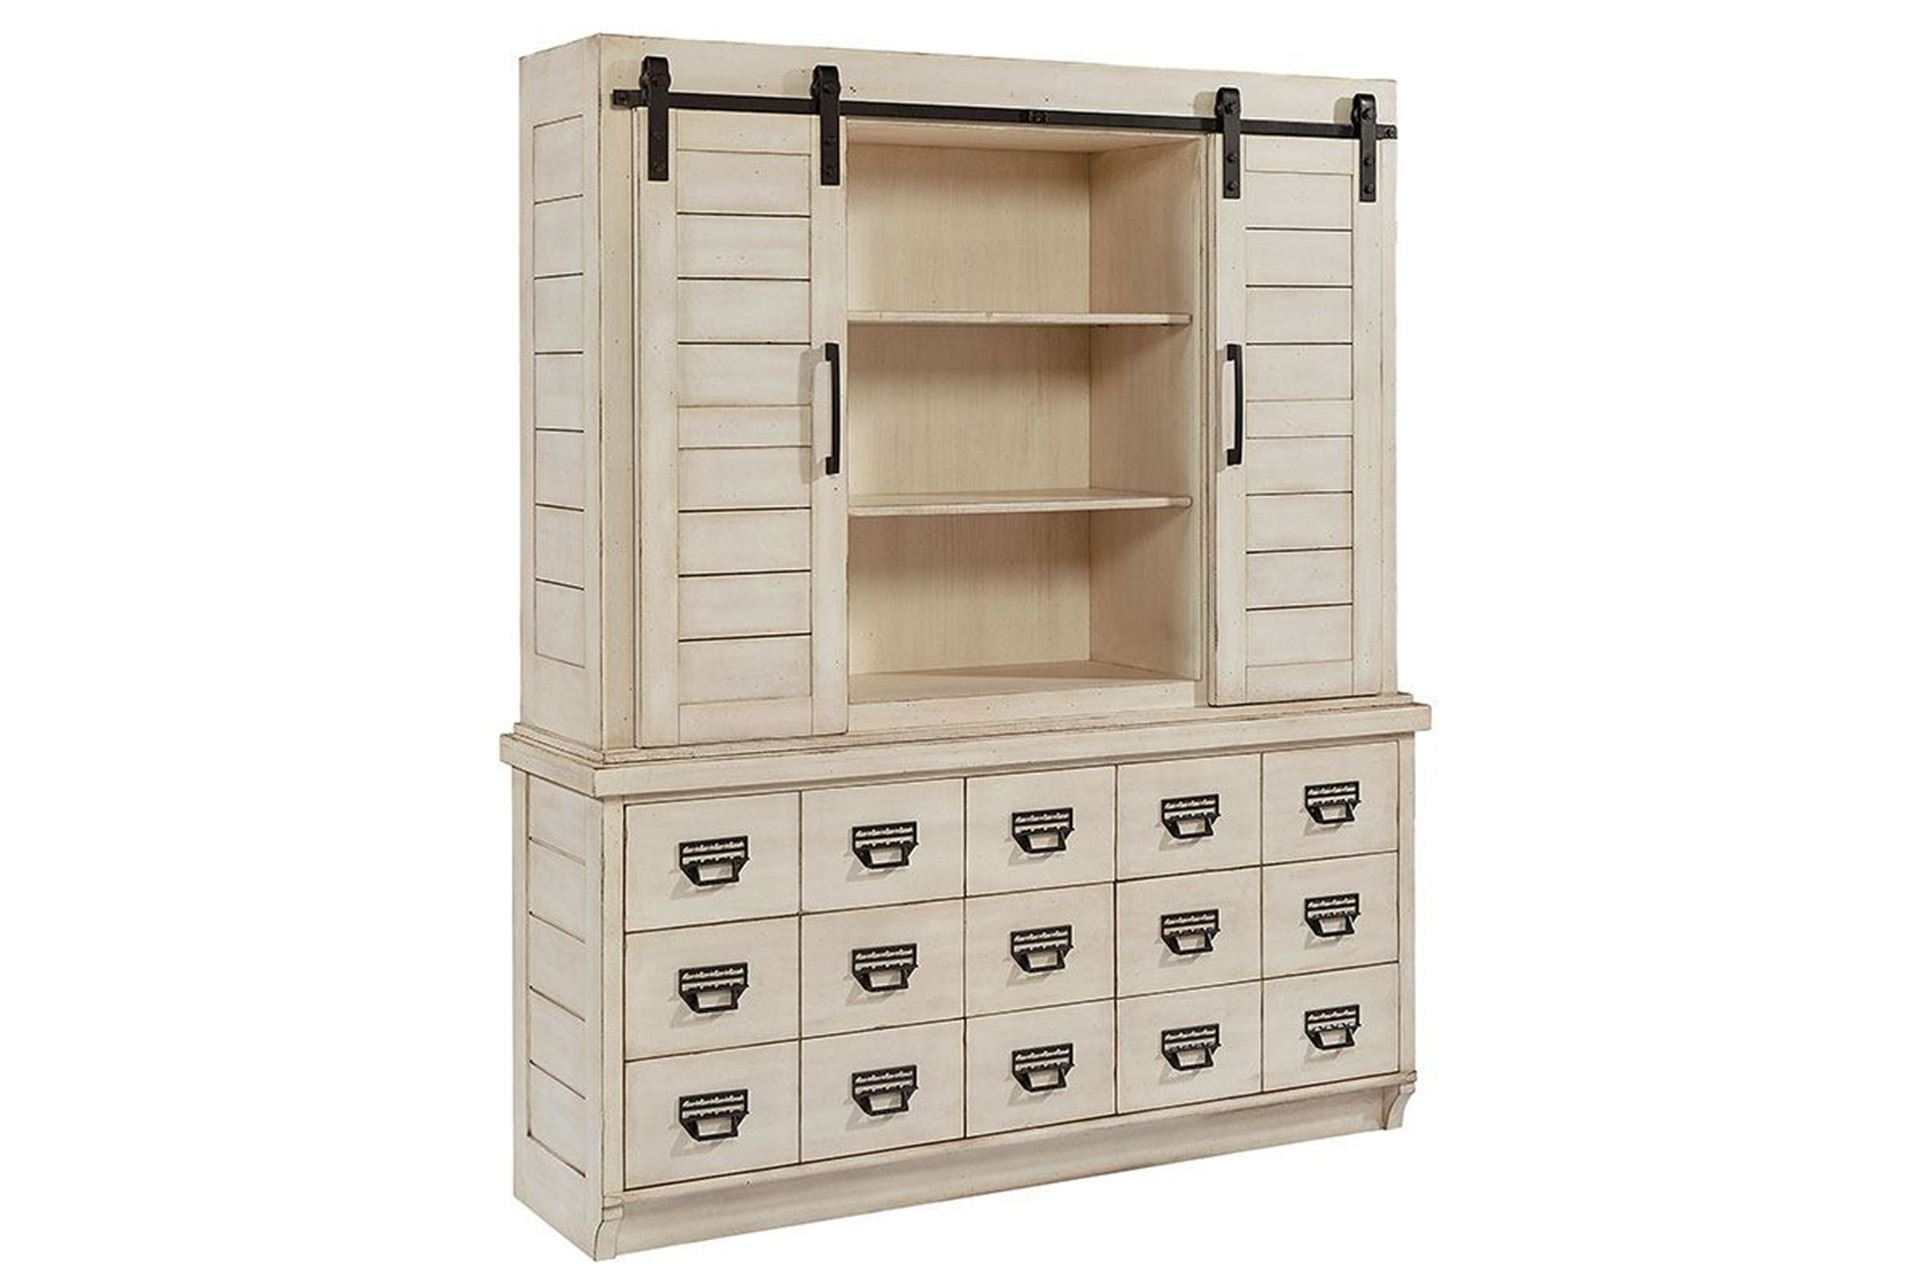 Magnolia Home Living Spaces hutch